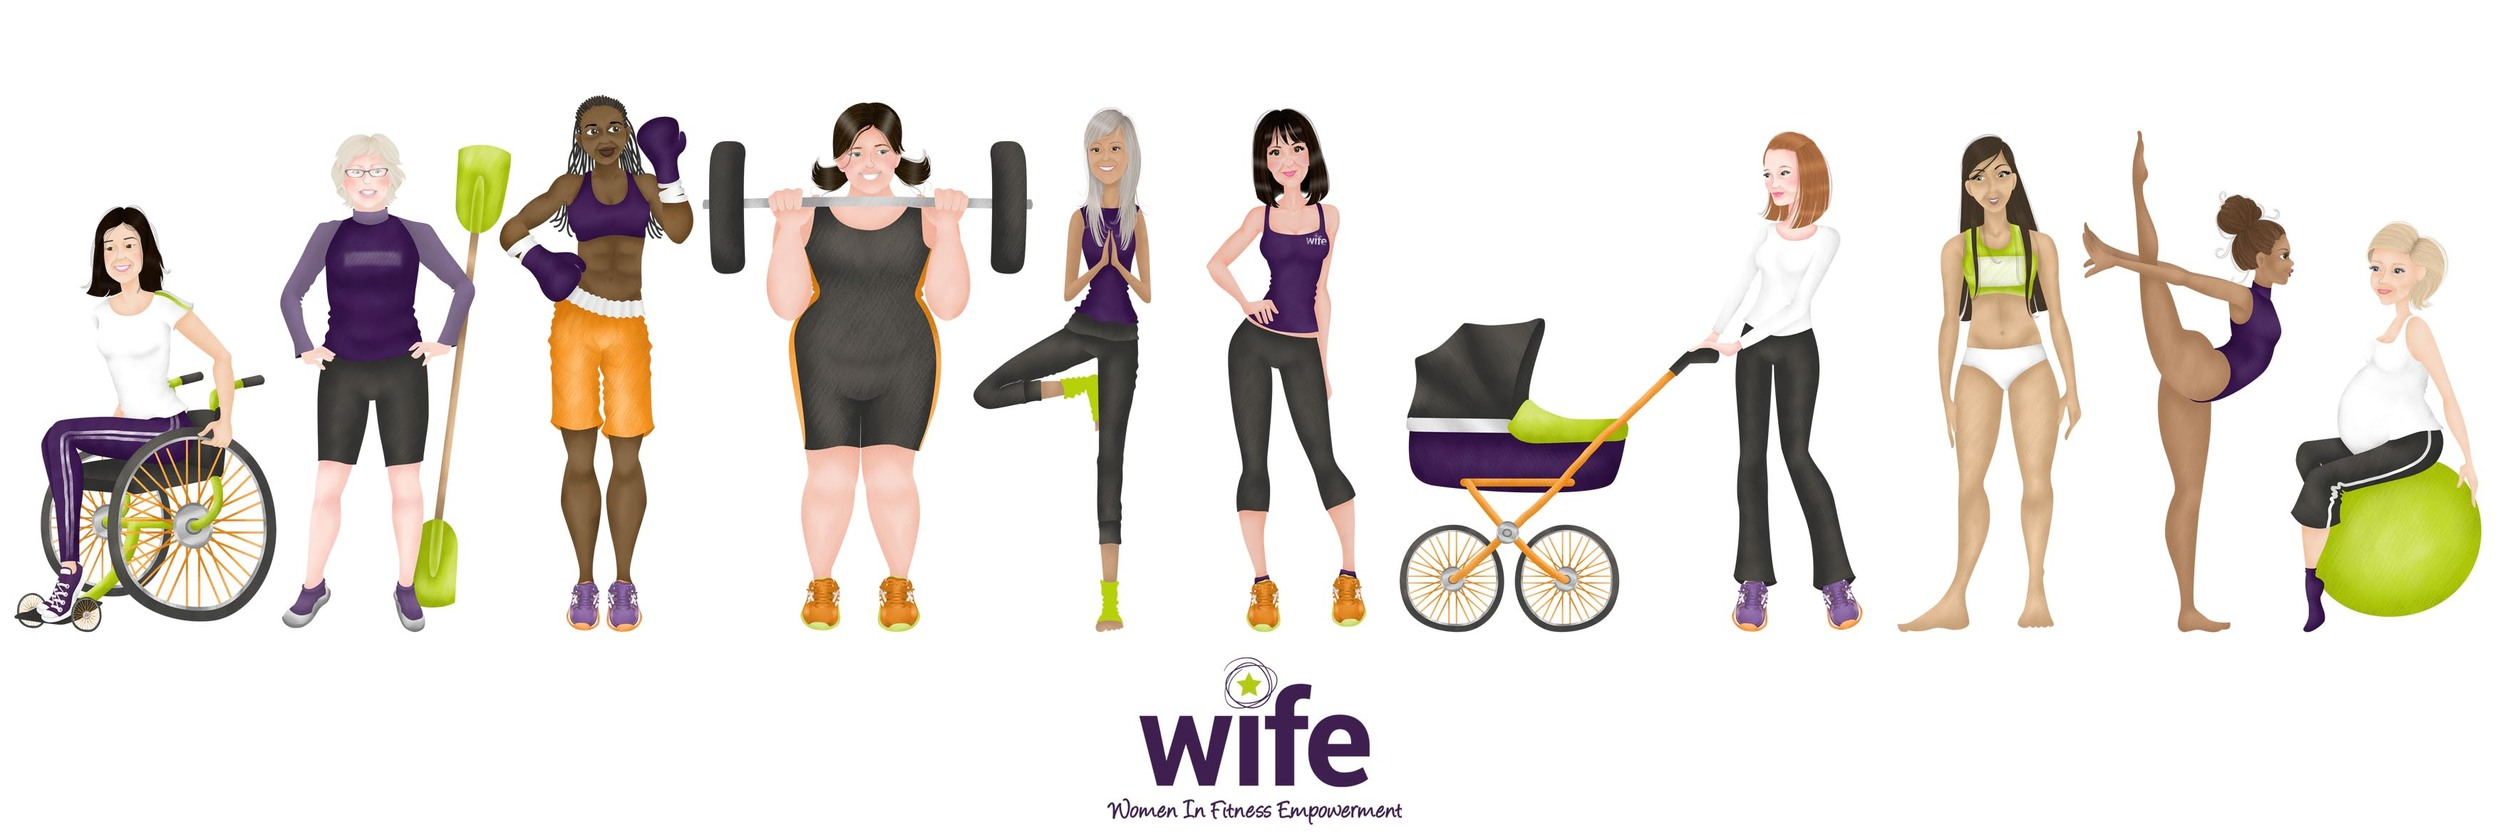 WIFE Events Bespoke Illustration for use on  WIFE 's website and across their  social media .